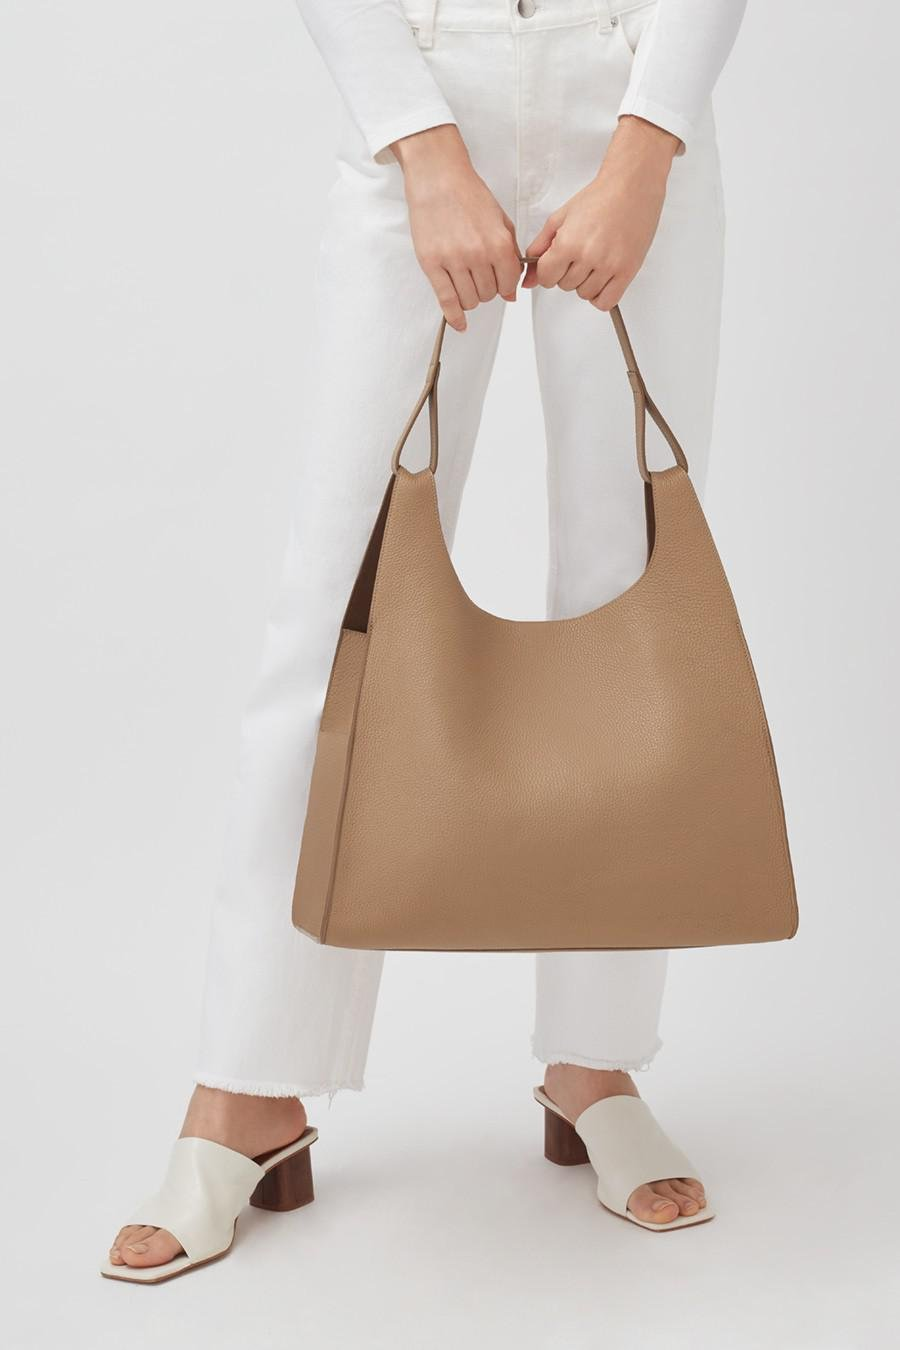 Women's Oversized Double Loop Bag in Cappuccino | Pebbled Leather by Cuyana 6